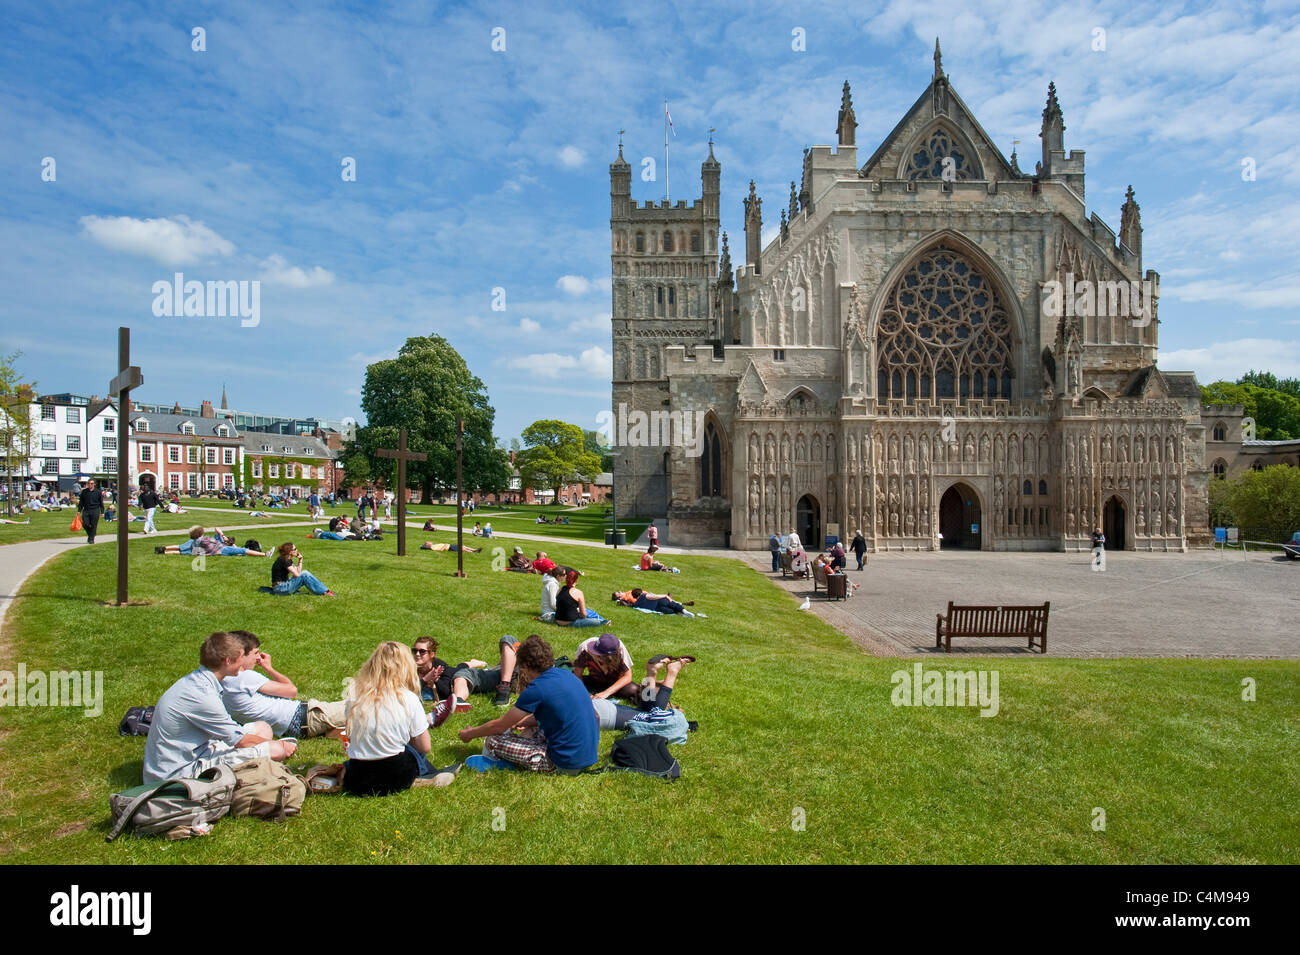 The famous West Window of Exeter Cathedral with students relaxing on the grass of Cathedral Green. - Stock Image